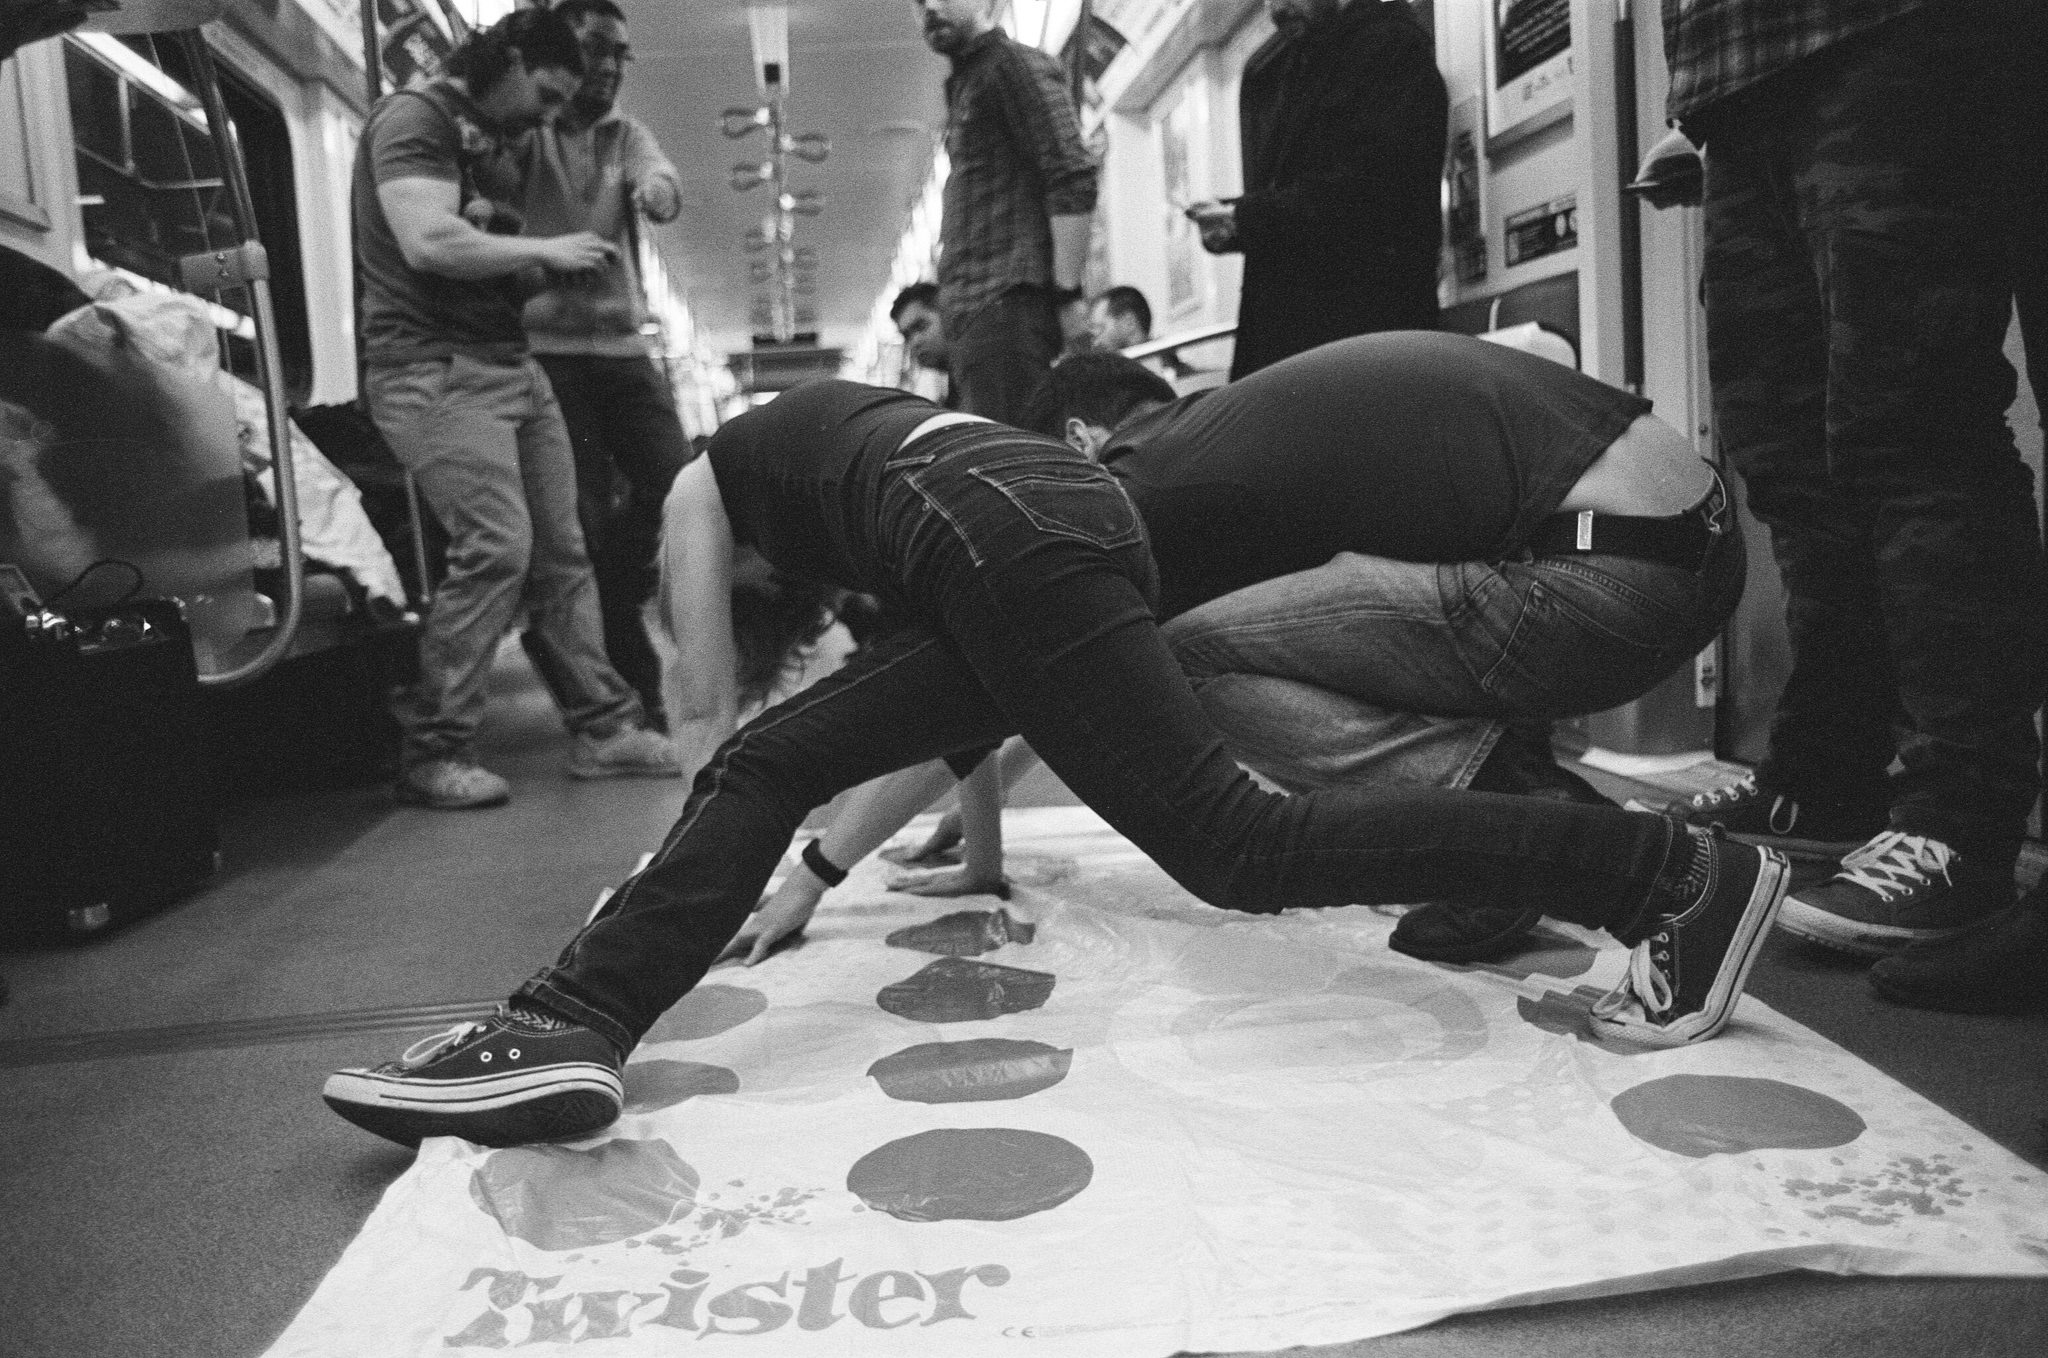 Andrew Gammell | Subway Twister No. 1 | Canon AE-1 | Tamron 28mm f2.5 | Fuji Neopan 400